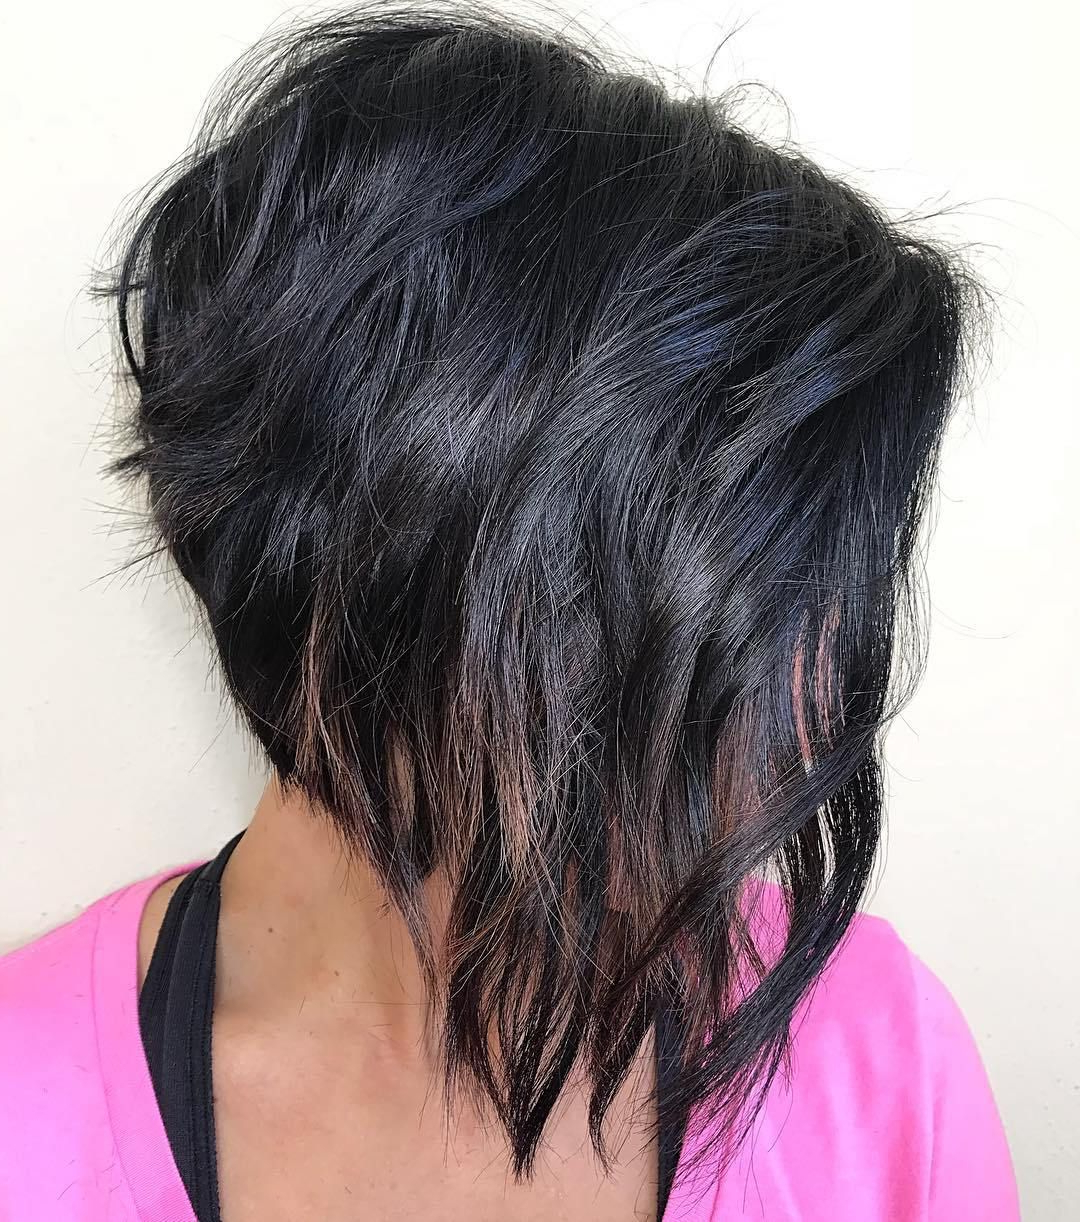 60 Classy Short Haircuts And Hairstyles For Thick Hair In With Regard To Steeply Angled Razored Asymmetrical Bob Hairstyles (Gallery 2 of 20)